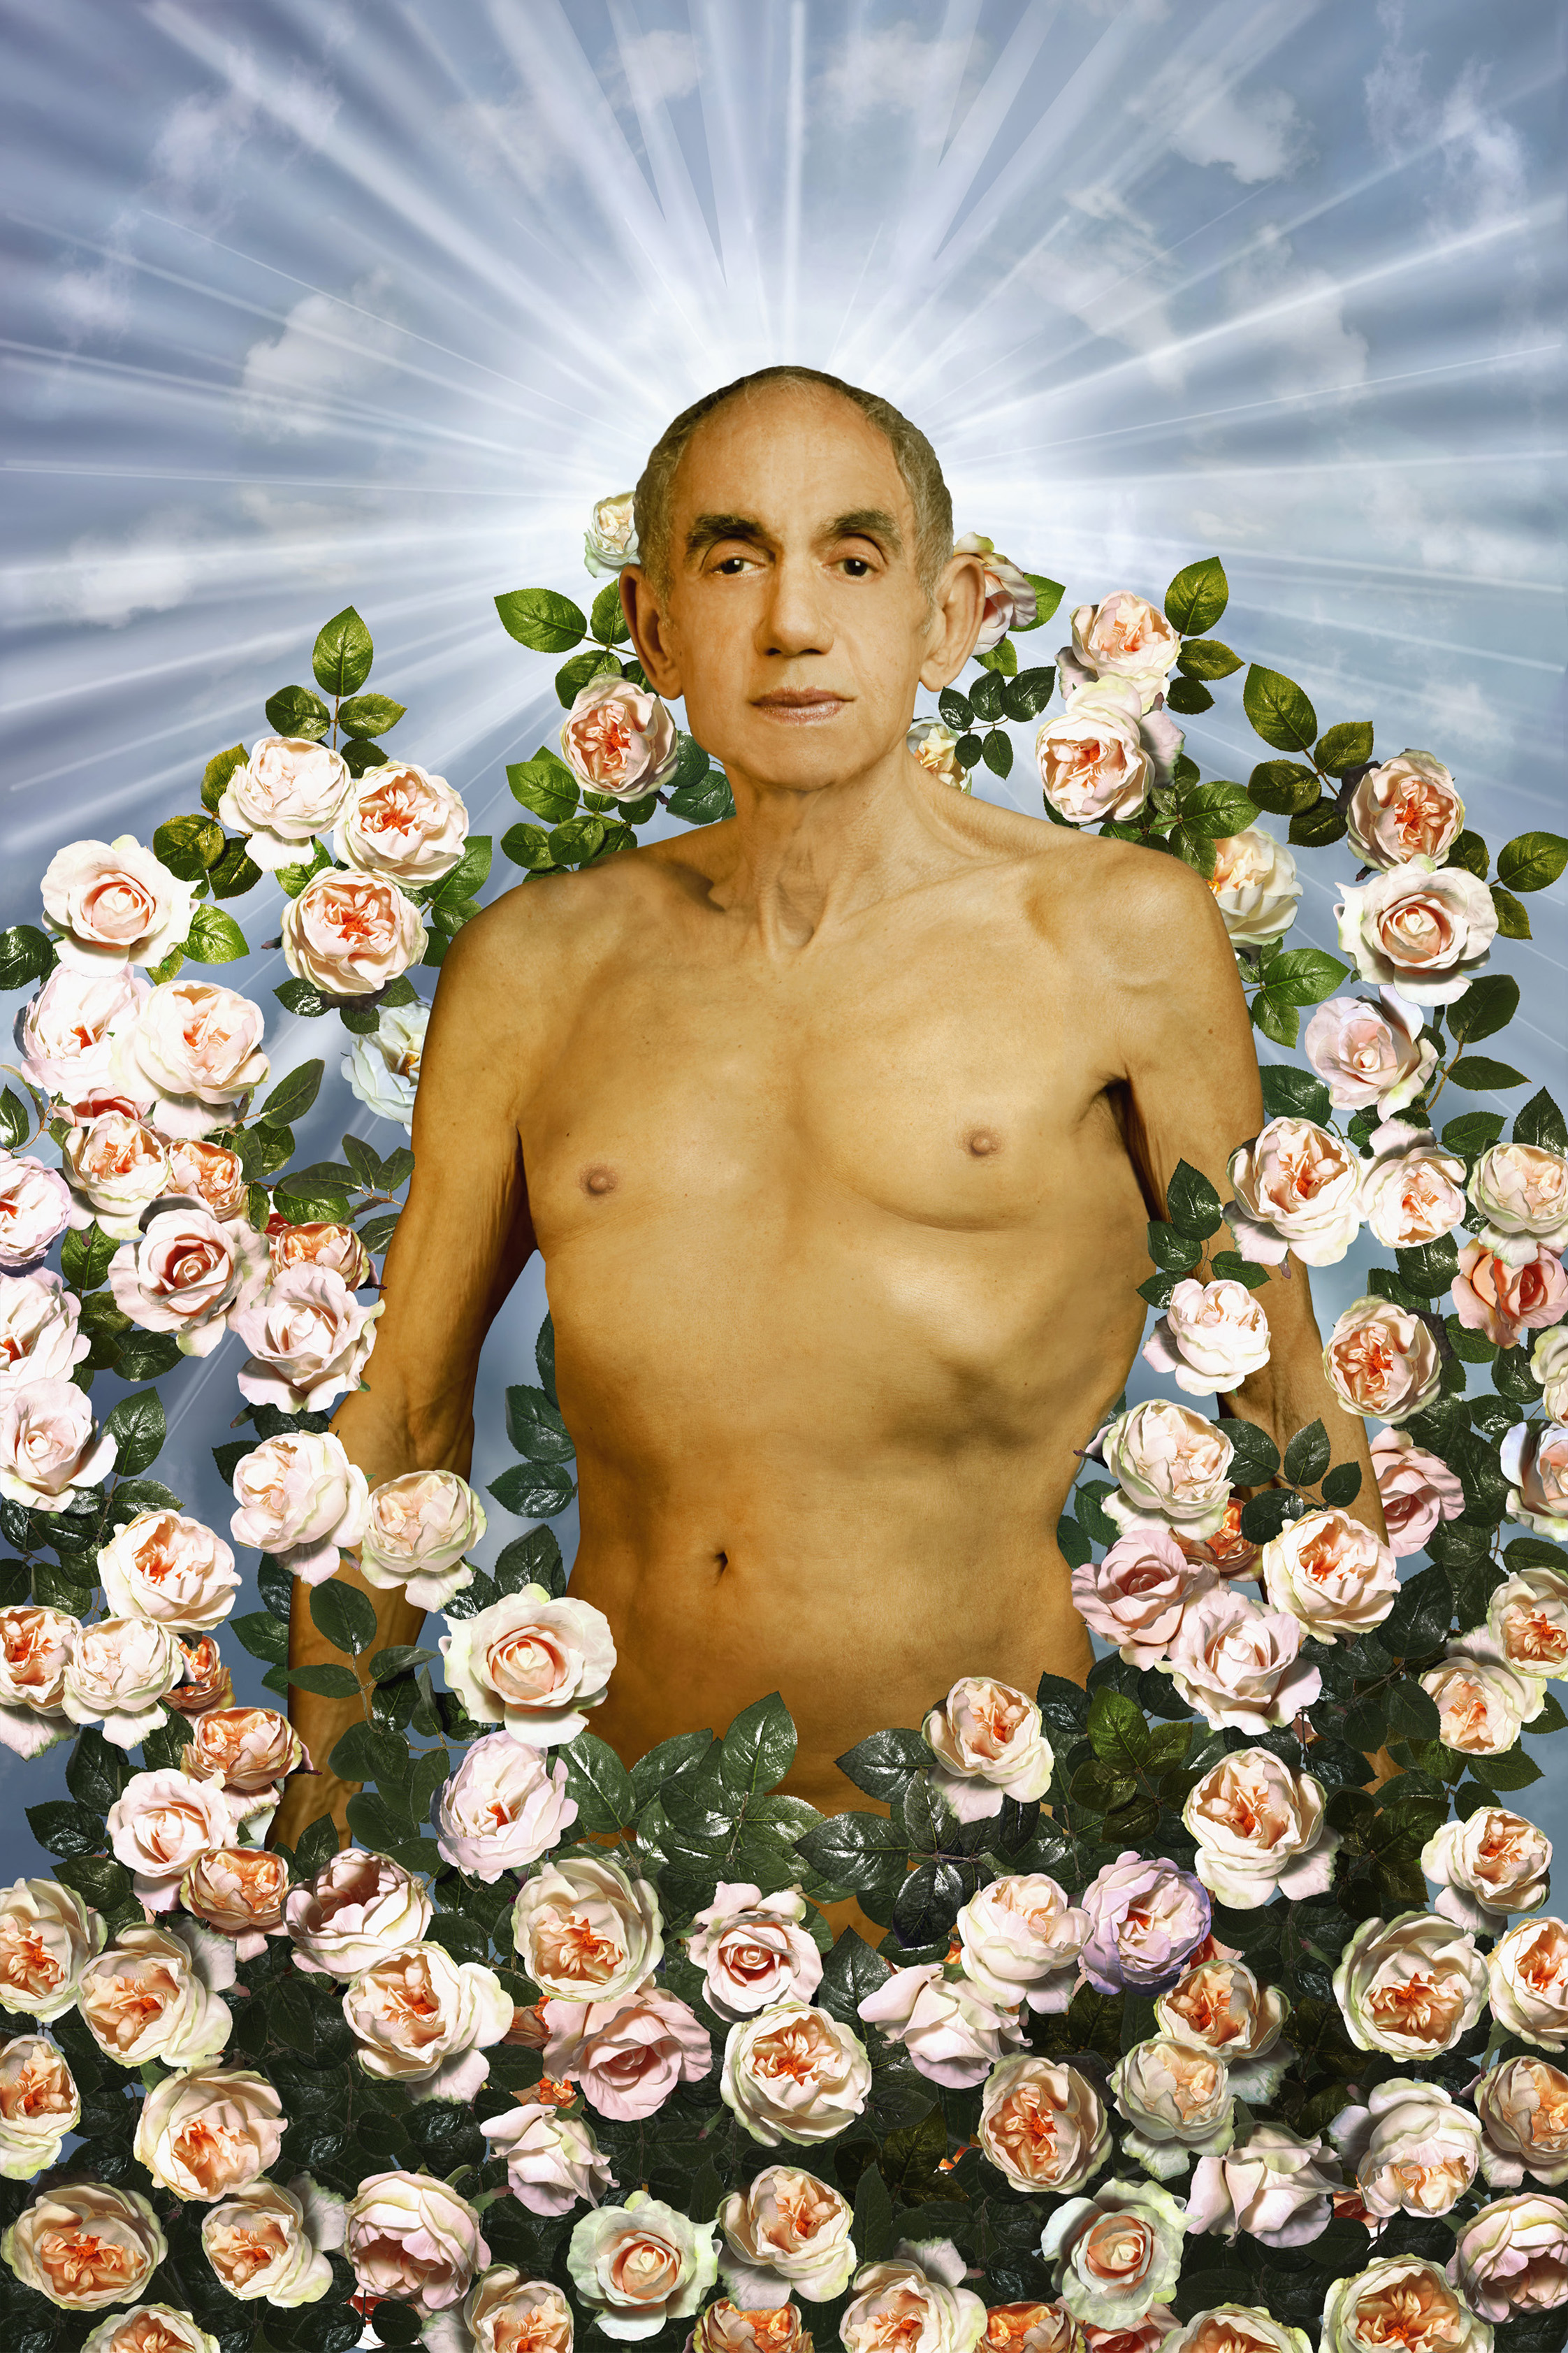 Hommage à Pierre et Gilles, La tentation d'Adam, 1996, série Looking for the Masters in Ricardo's golden shoes © Catherine Balet, 2014. Courtesy galerie Thierry Bigaignon